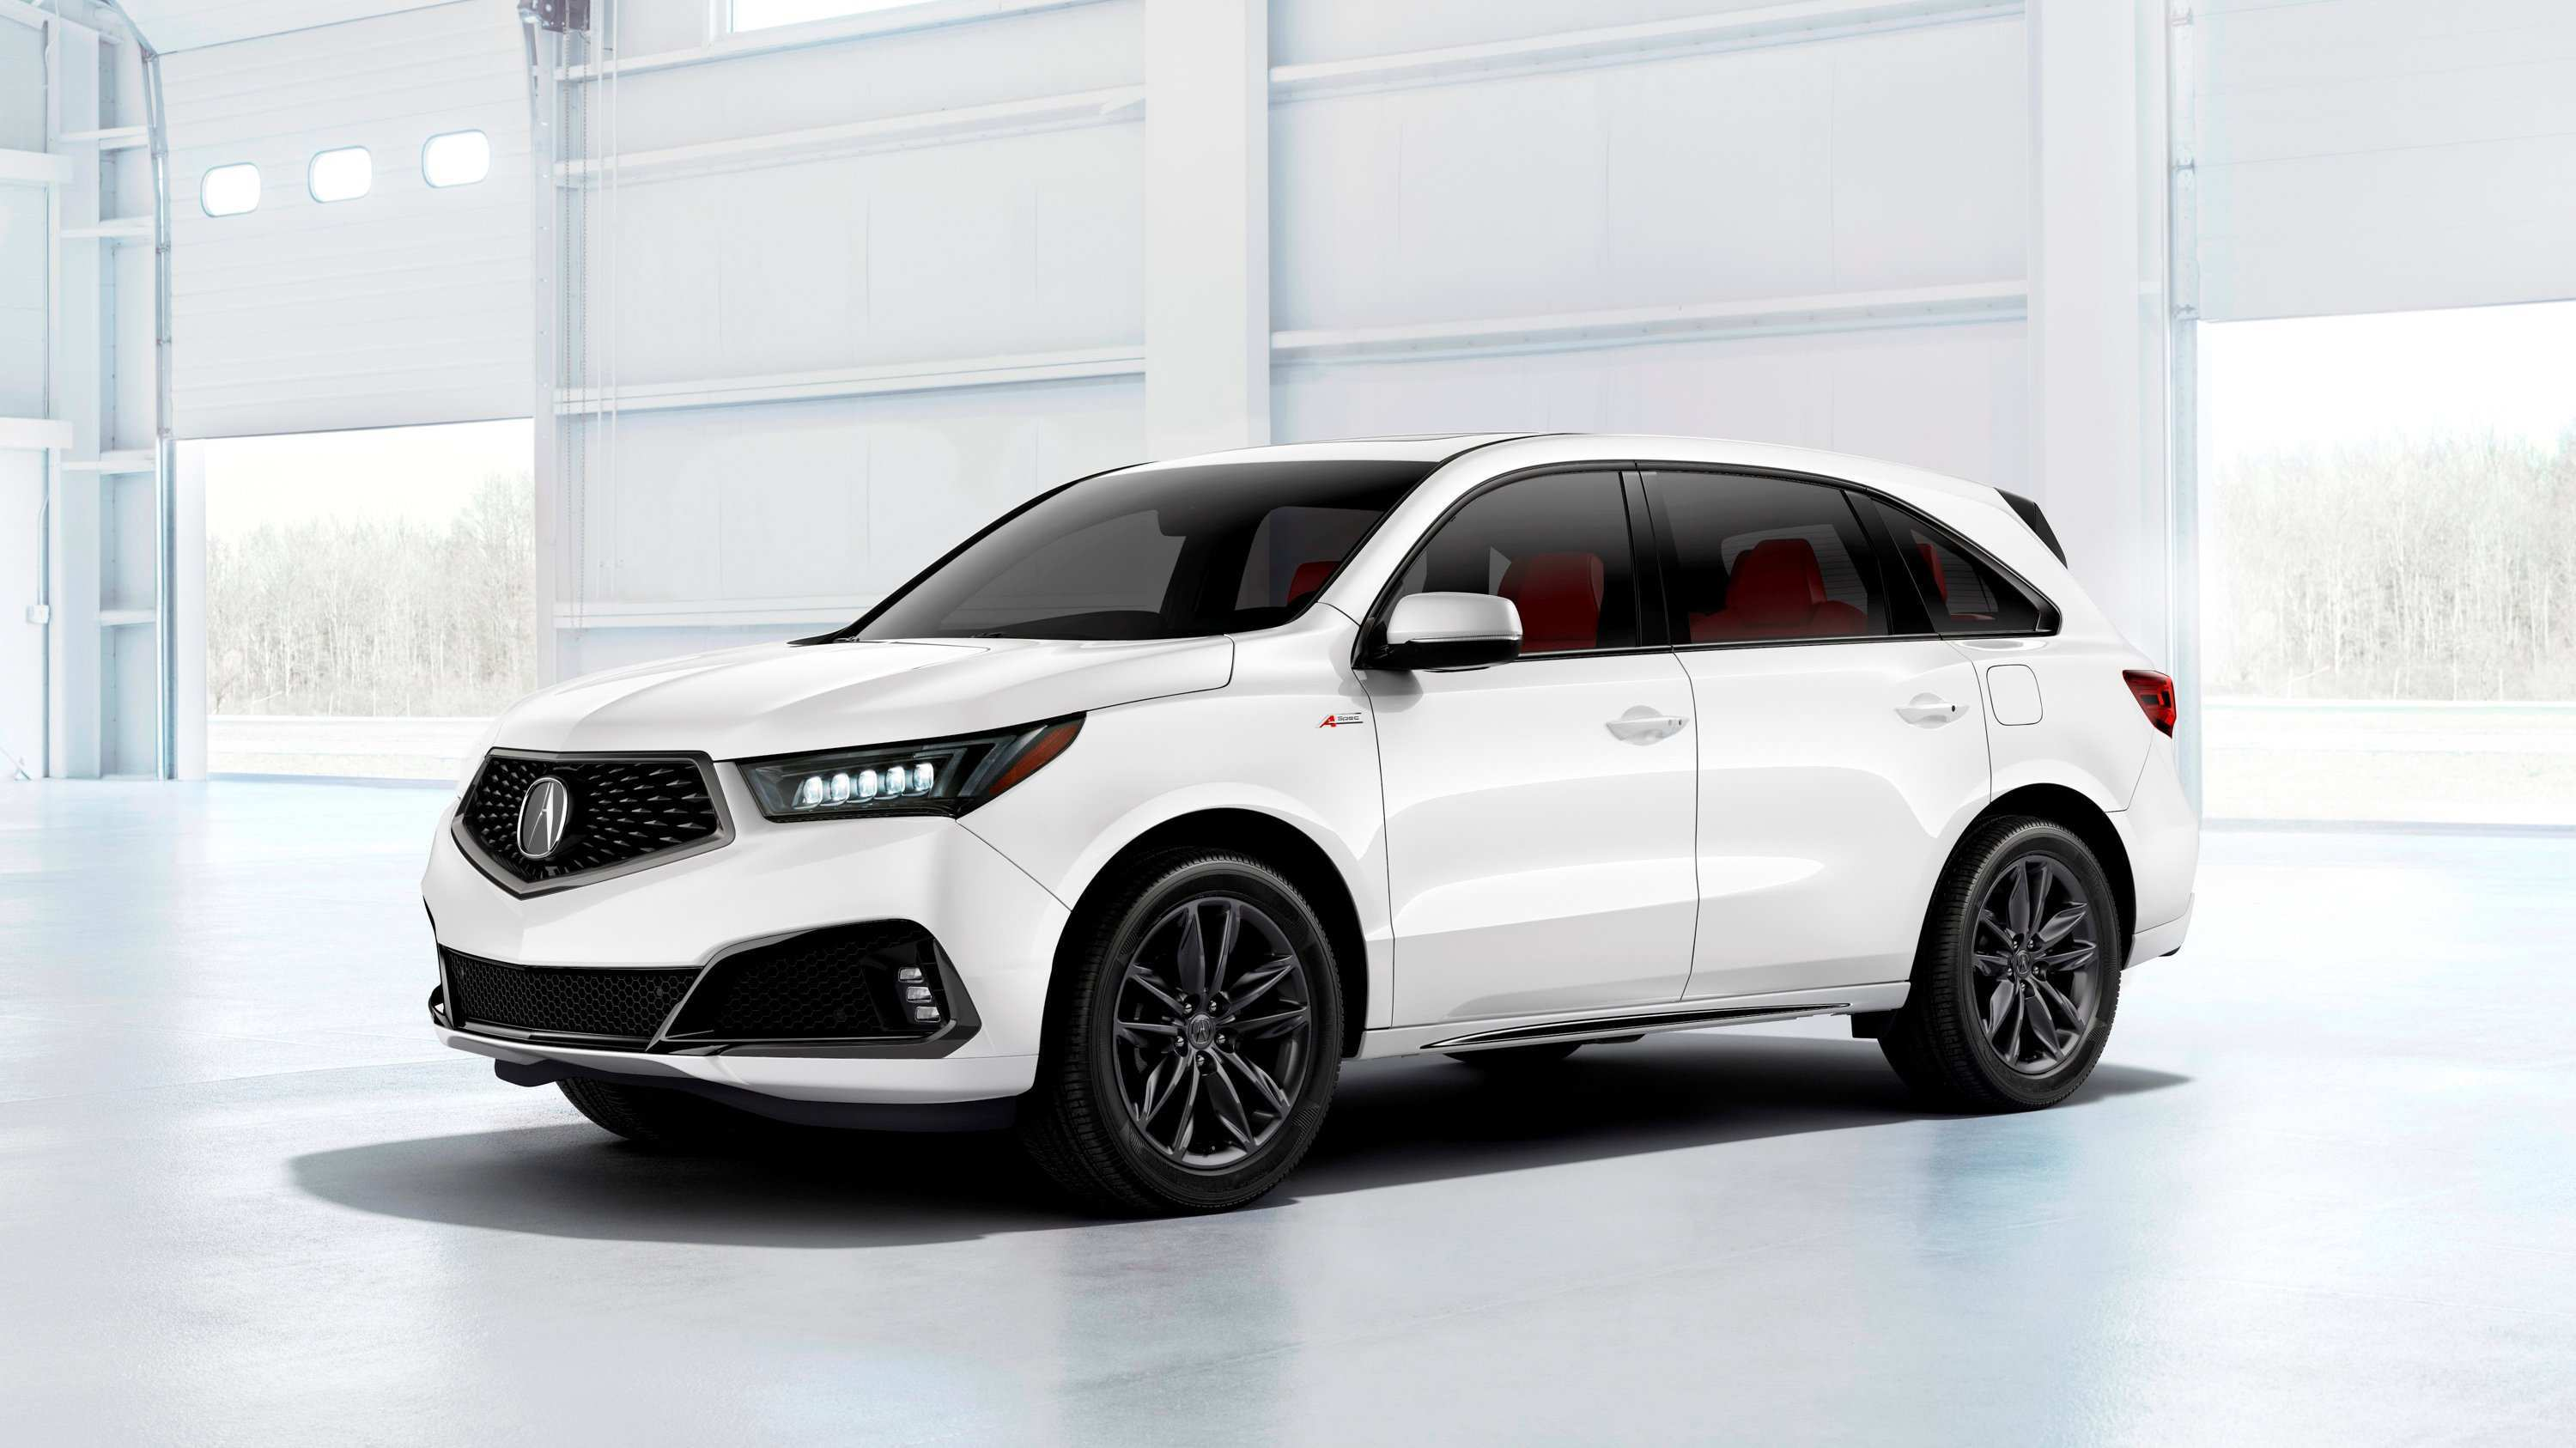 39 New Acura Zdx 2020 Pricing by Acura Zdx 2020